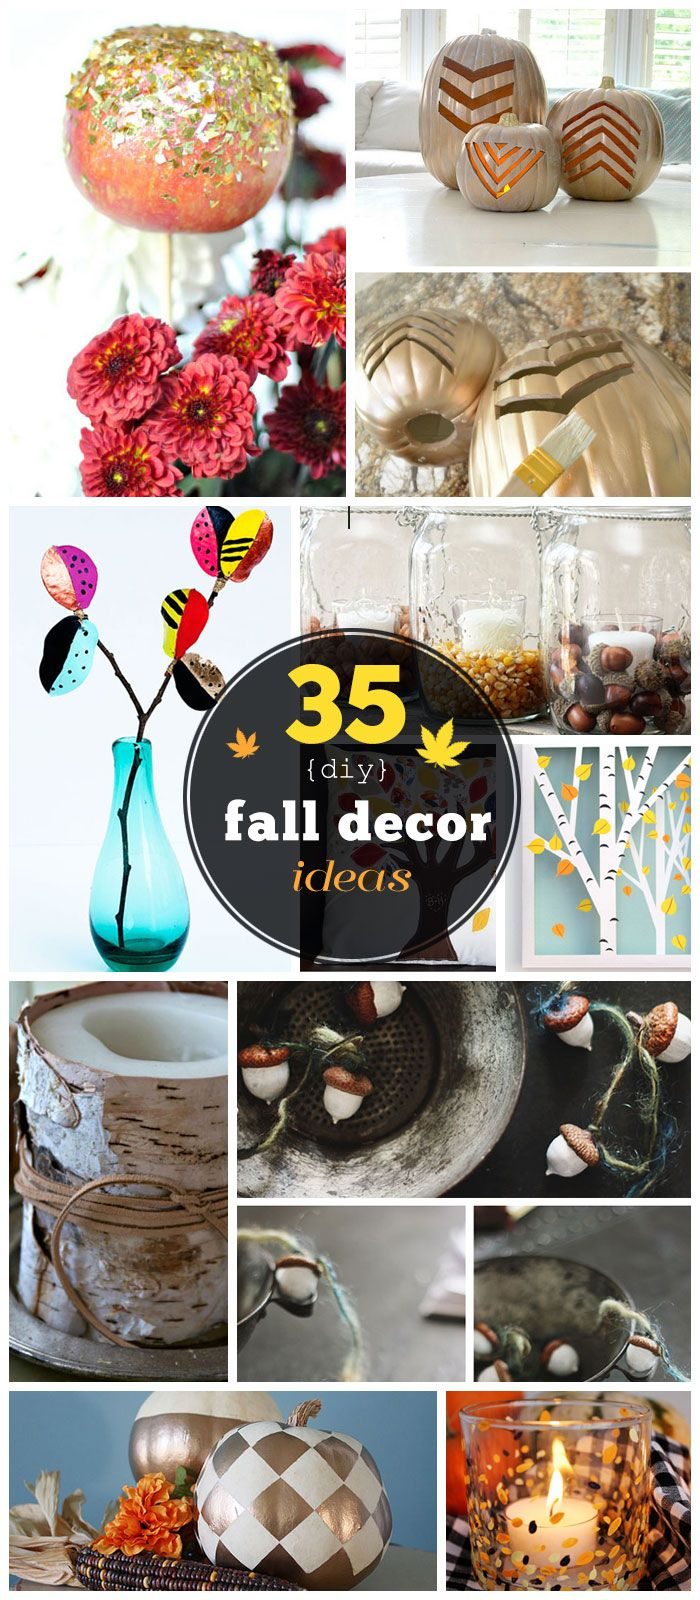 Duct tape crafts kits - 35 Diy Fall Decorating Ideas For The Home